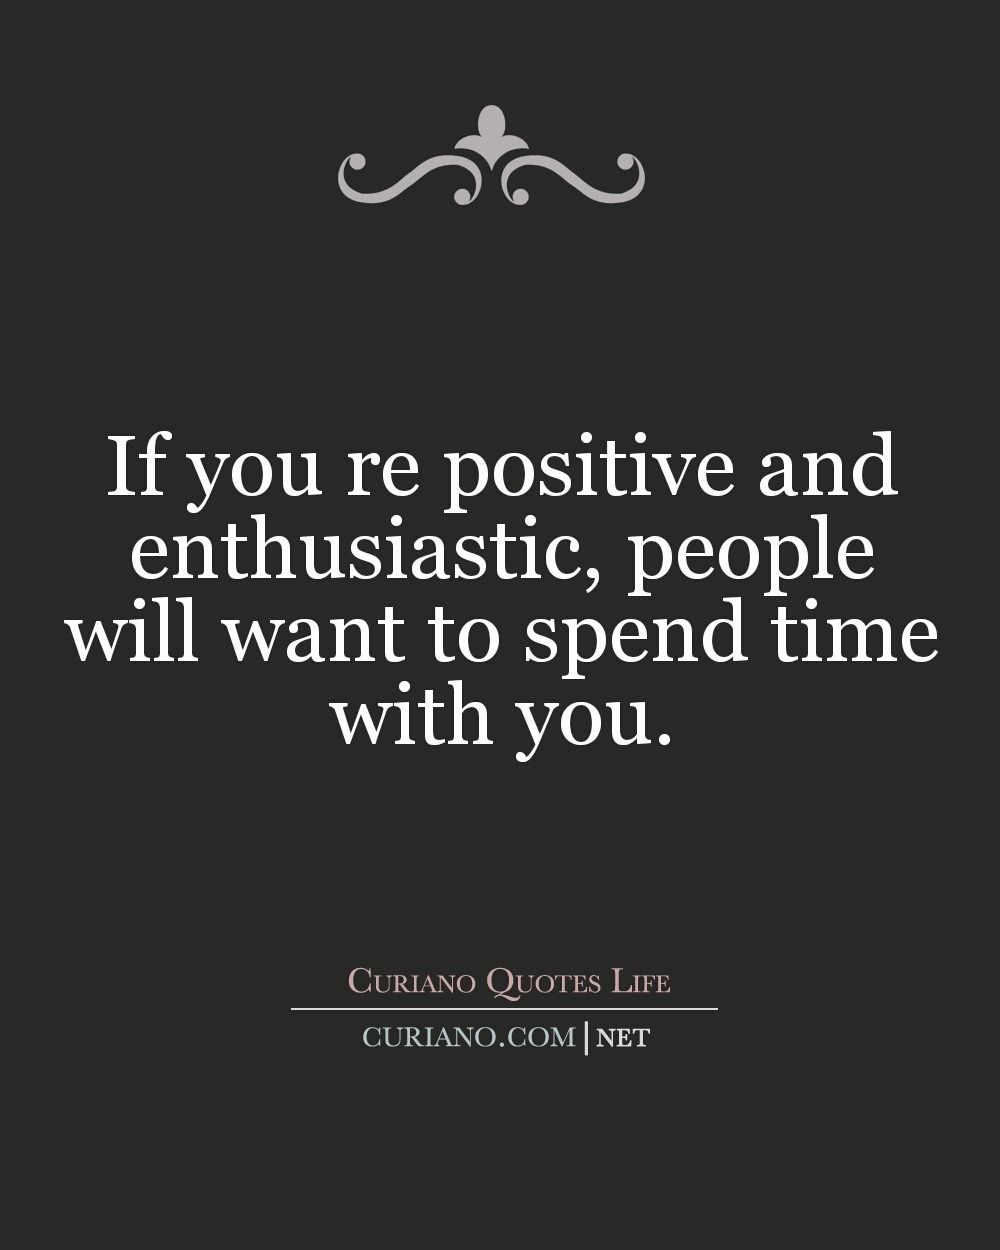 Wise Quote About Life This Blog Curiano Quotes Life Shows Quotes Best Life Quote